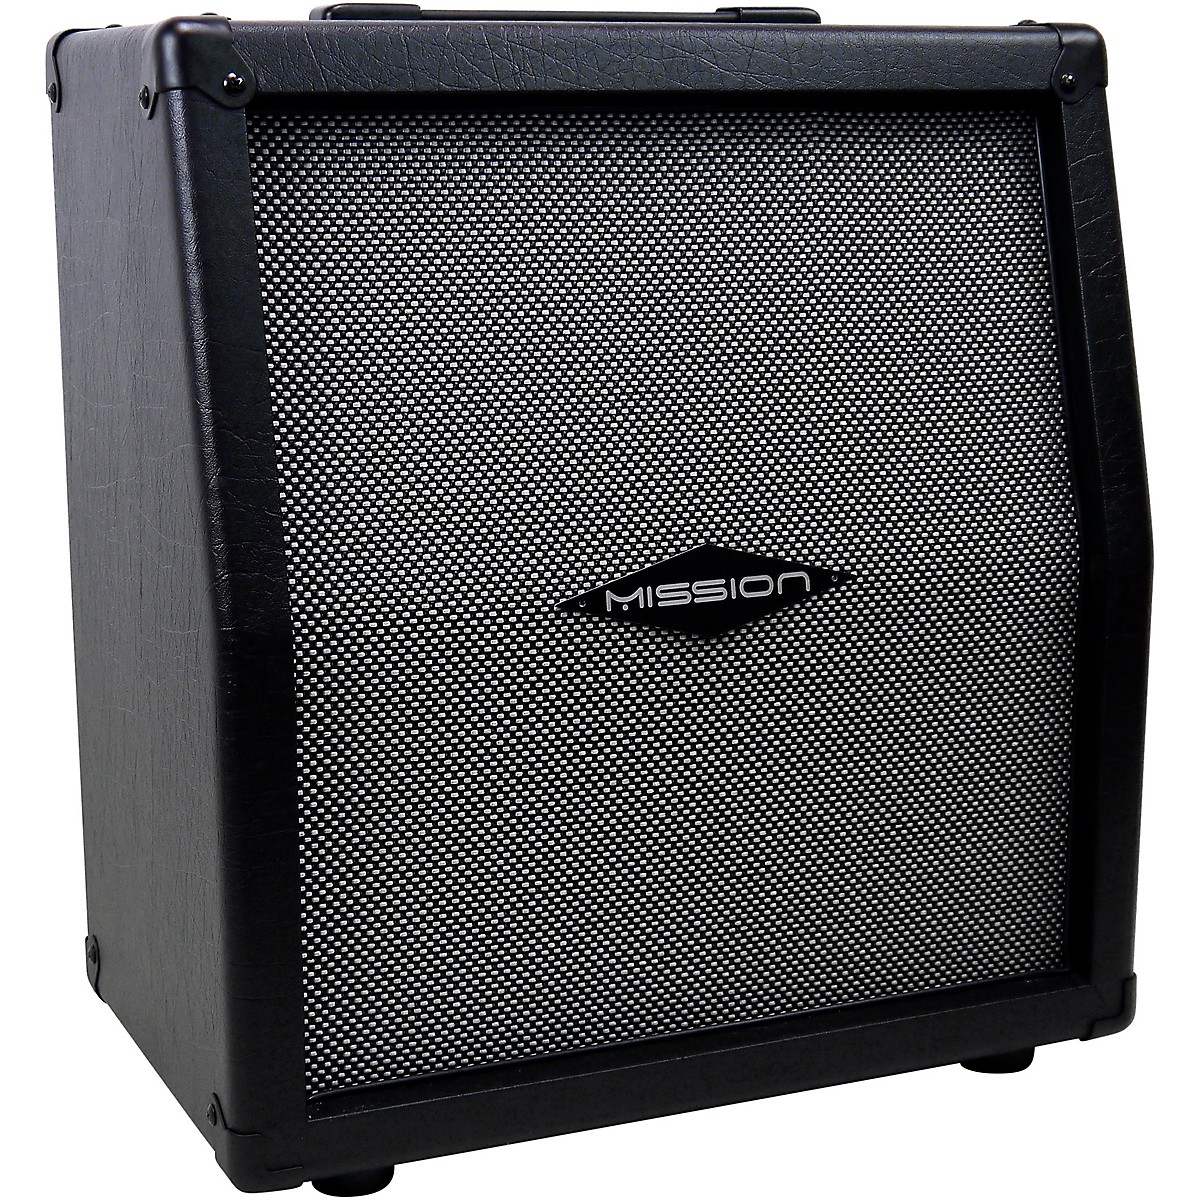 Mission Engineering GM-Io Powered Guitar Speaker Cabinet